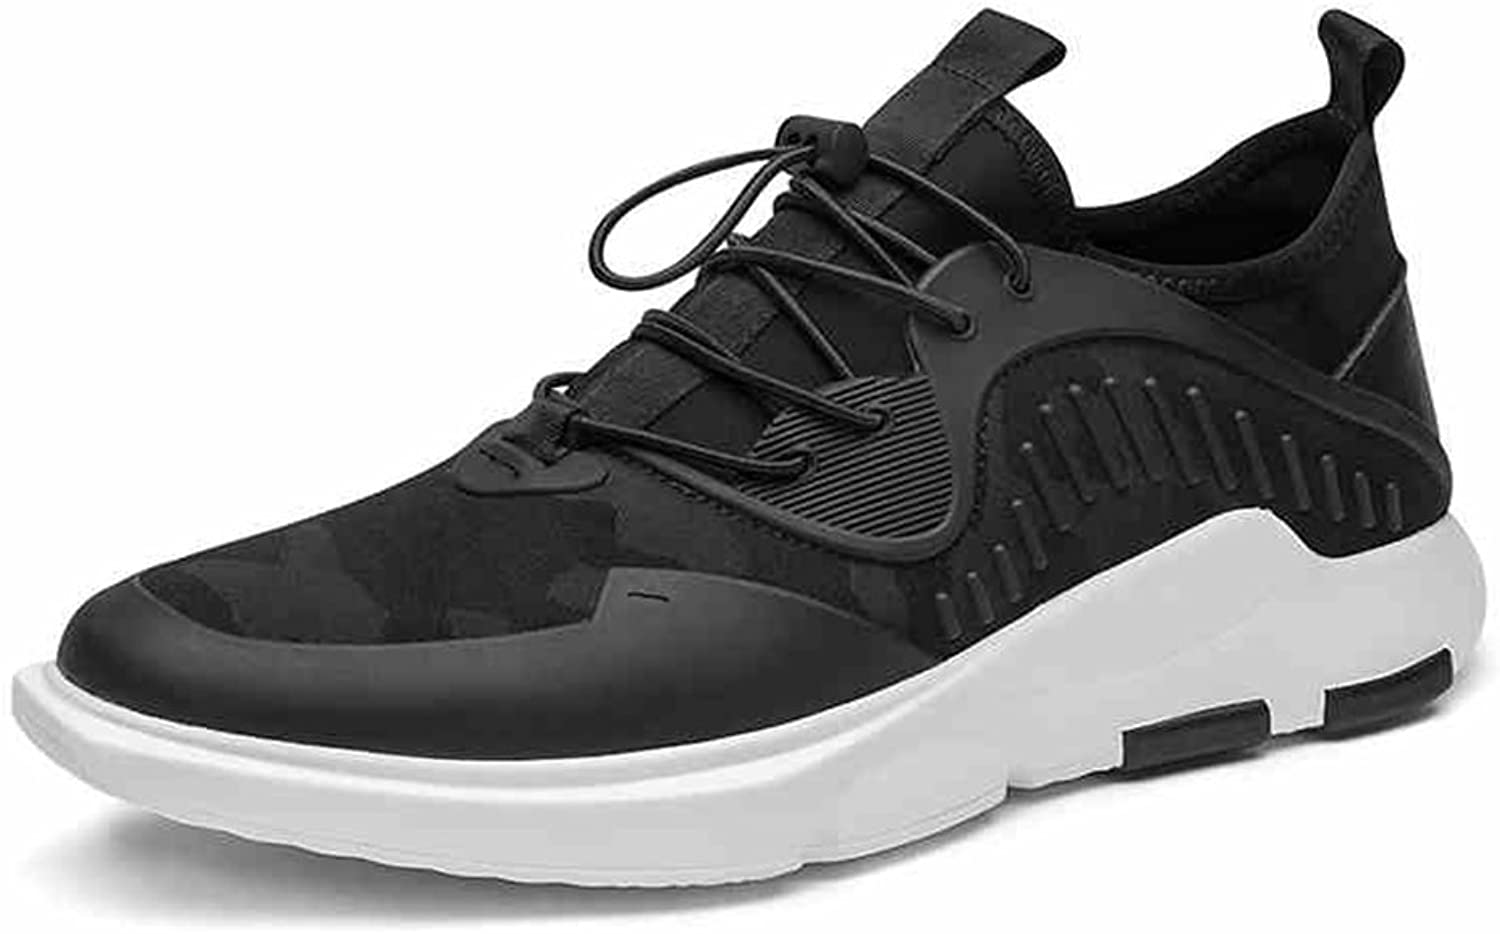 YIXINY 17133 Spring And Autumn Black Breathable Lightweight Outdoor Casual Running shoes Men's shoes (Size   EU39 UK6 CN39)